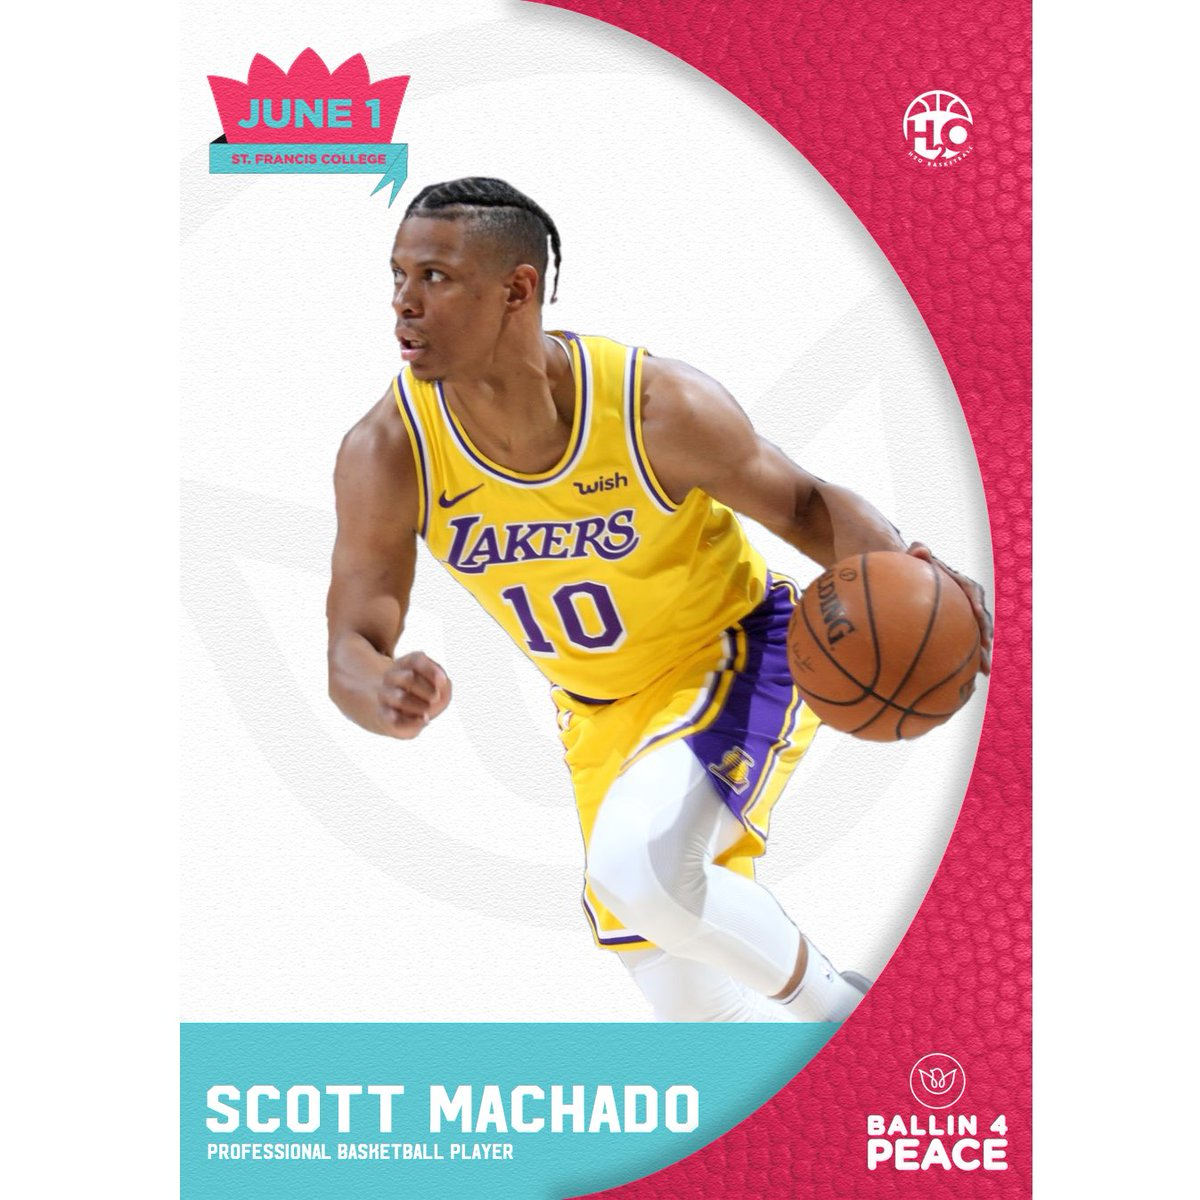 @_ScottMachado will join us June 1st for our 5 year anniversary of #Ballin4peace come out and support the movement. http://www.ballin4peace.eventbrite.com